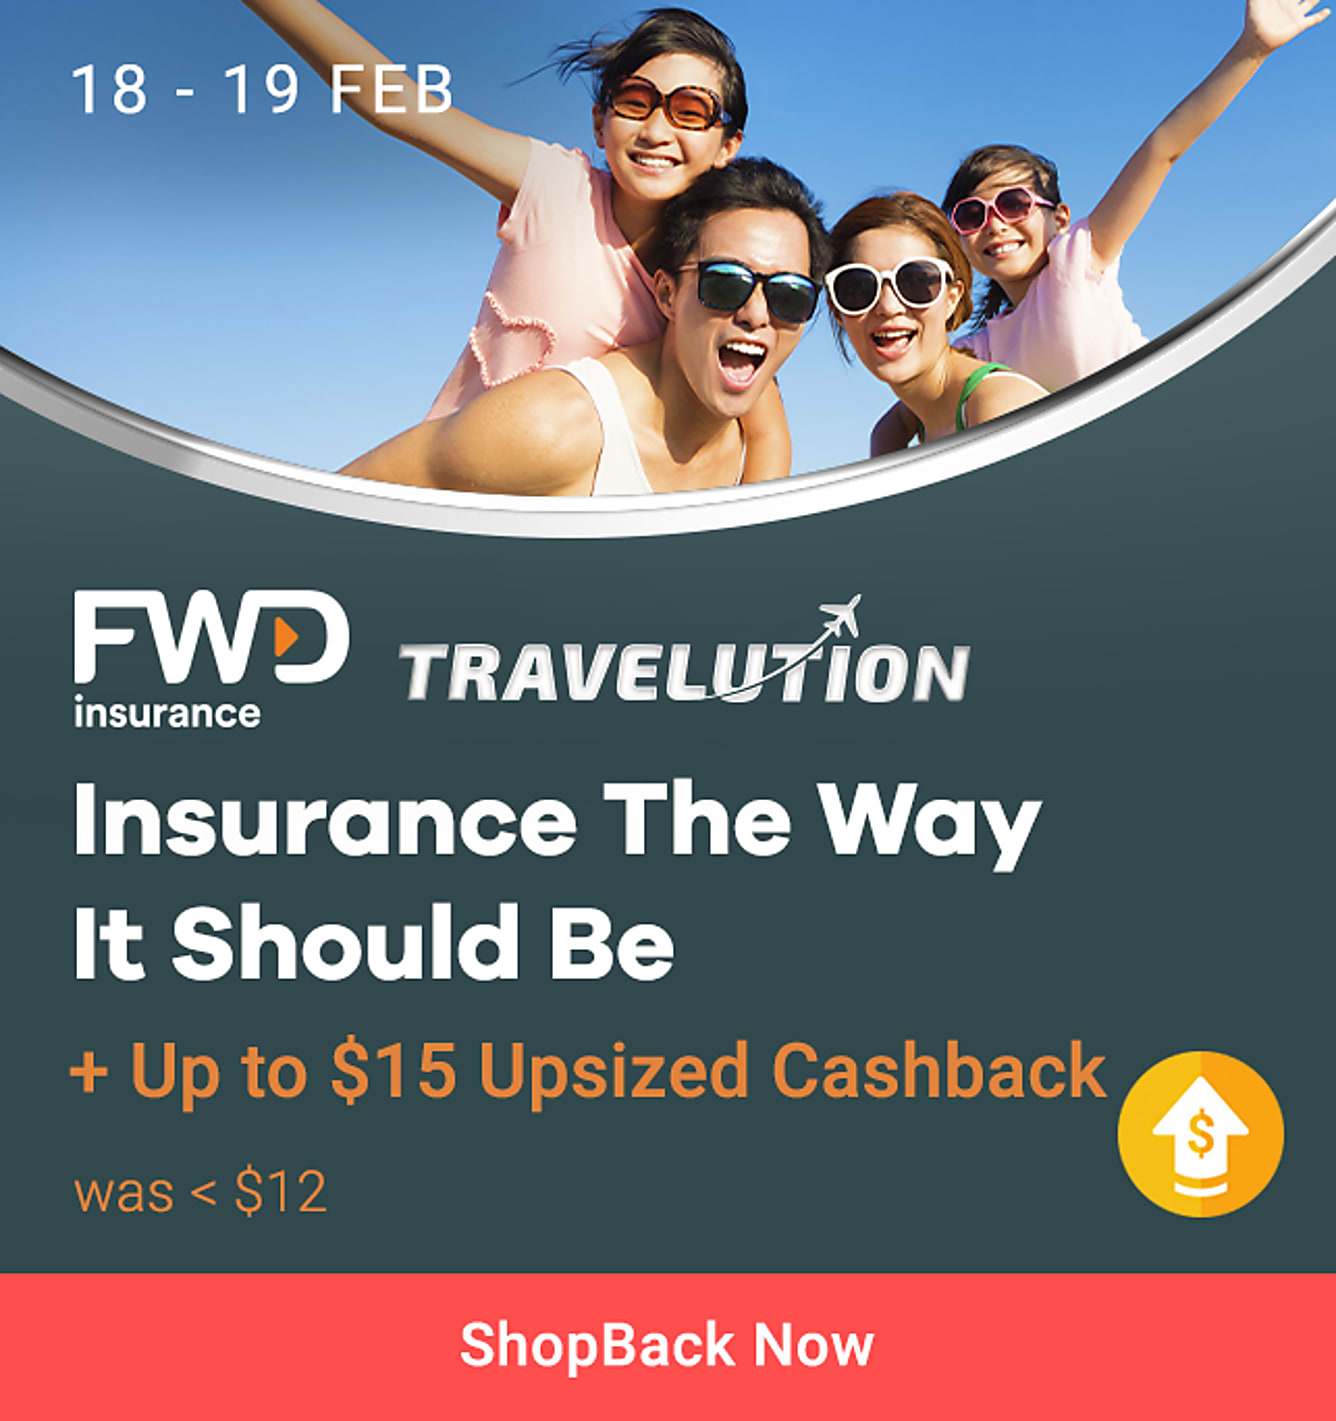 fwd up to $15 upsized Cashback